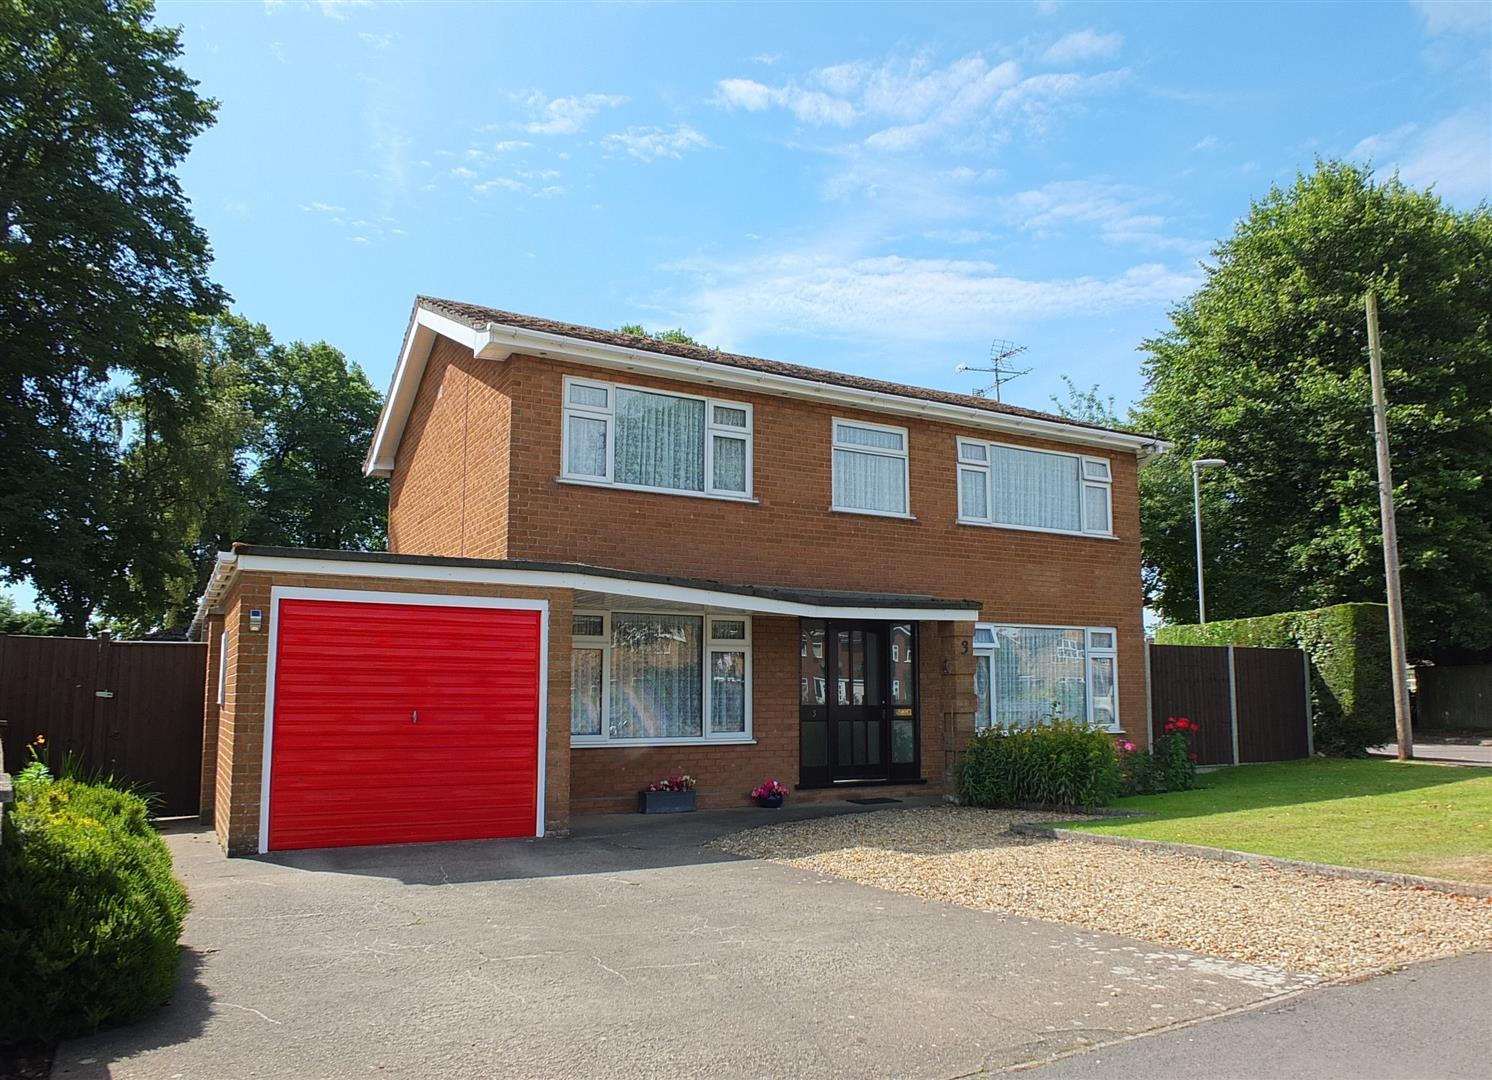 4 bed detached house for sale in Holbeach Spalding, PE12 7NE, PE12